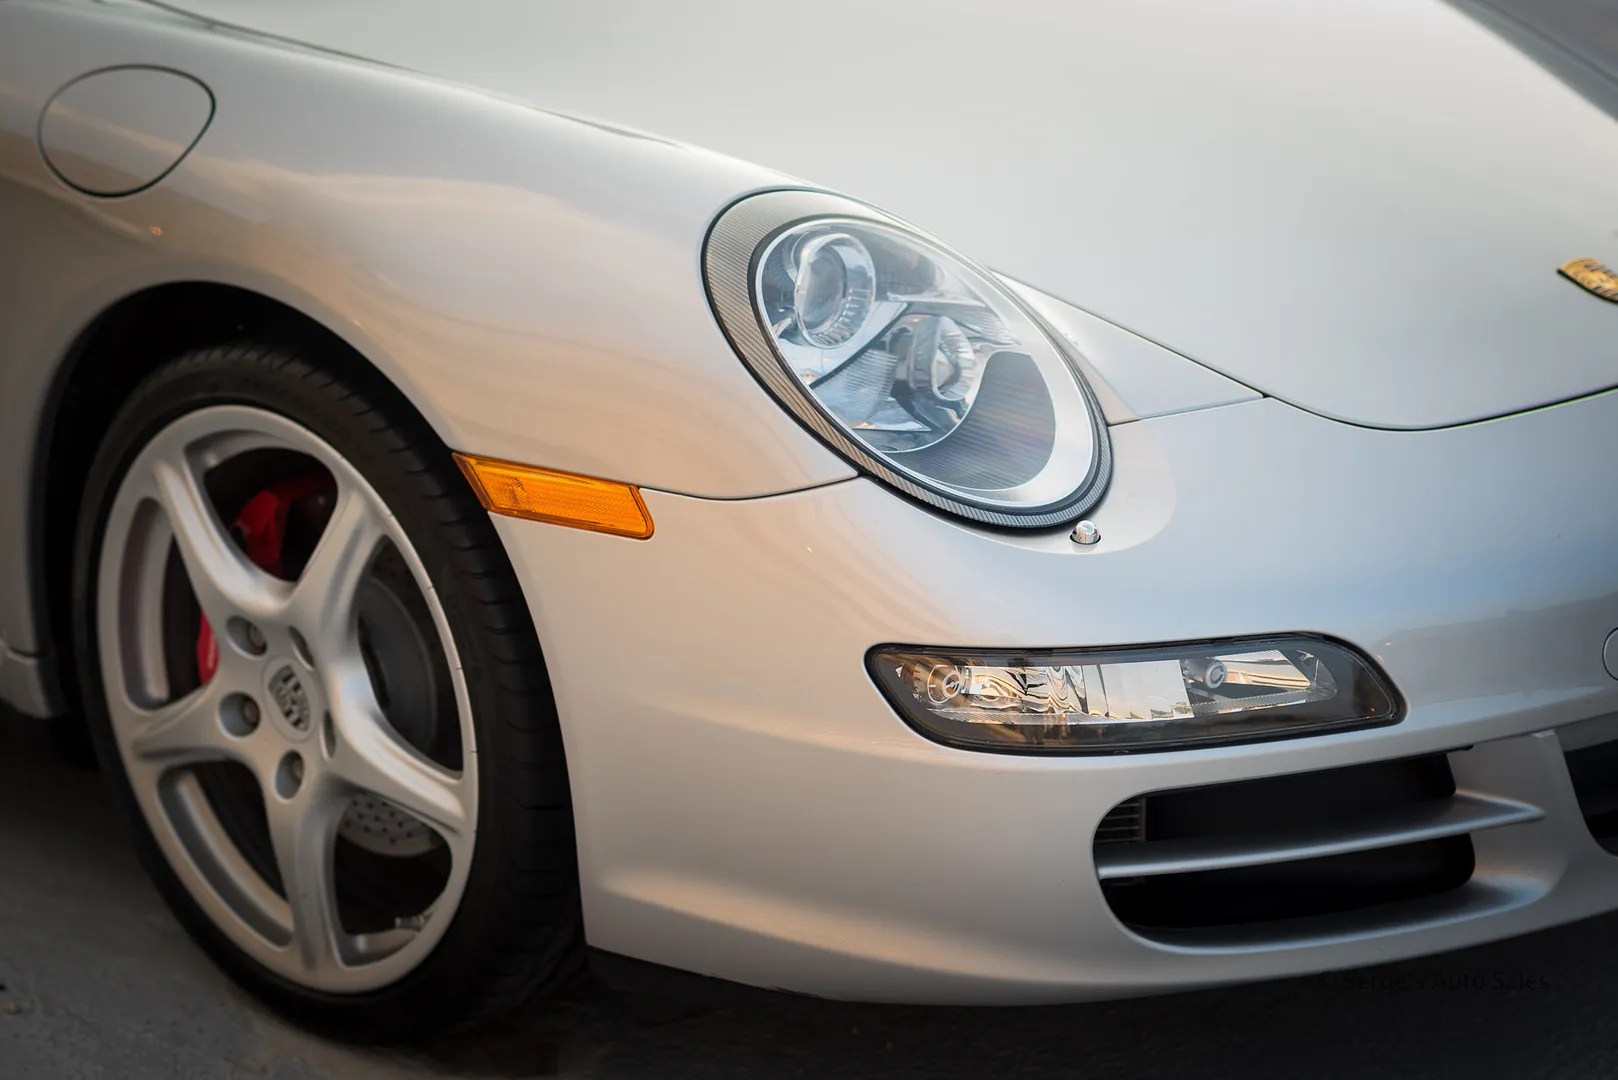 photo Serges-auto-sales-porsche-911-for-sale-scranton-pennsylvania-26_zpsr1wfp12s.jpg